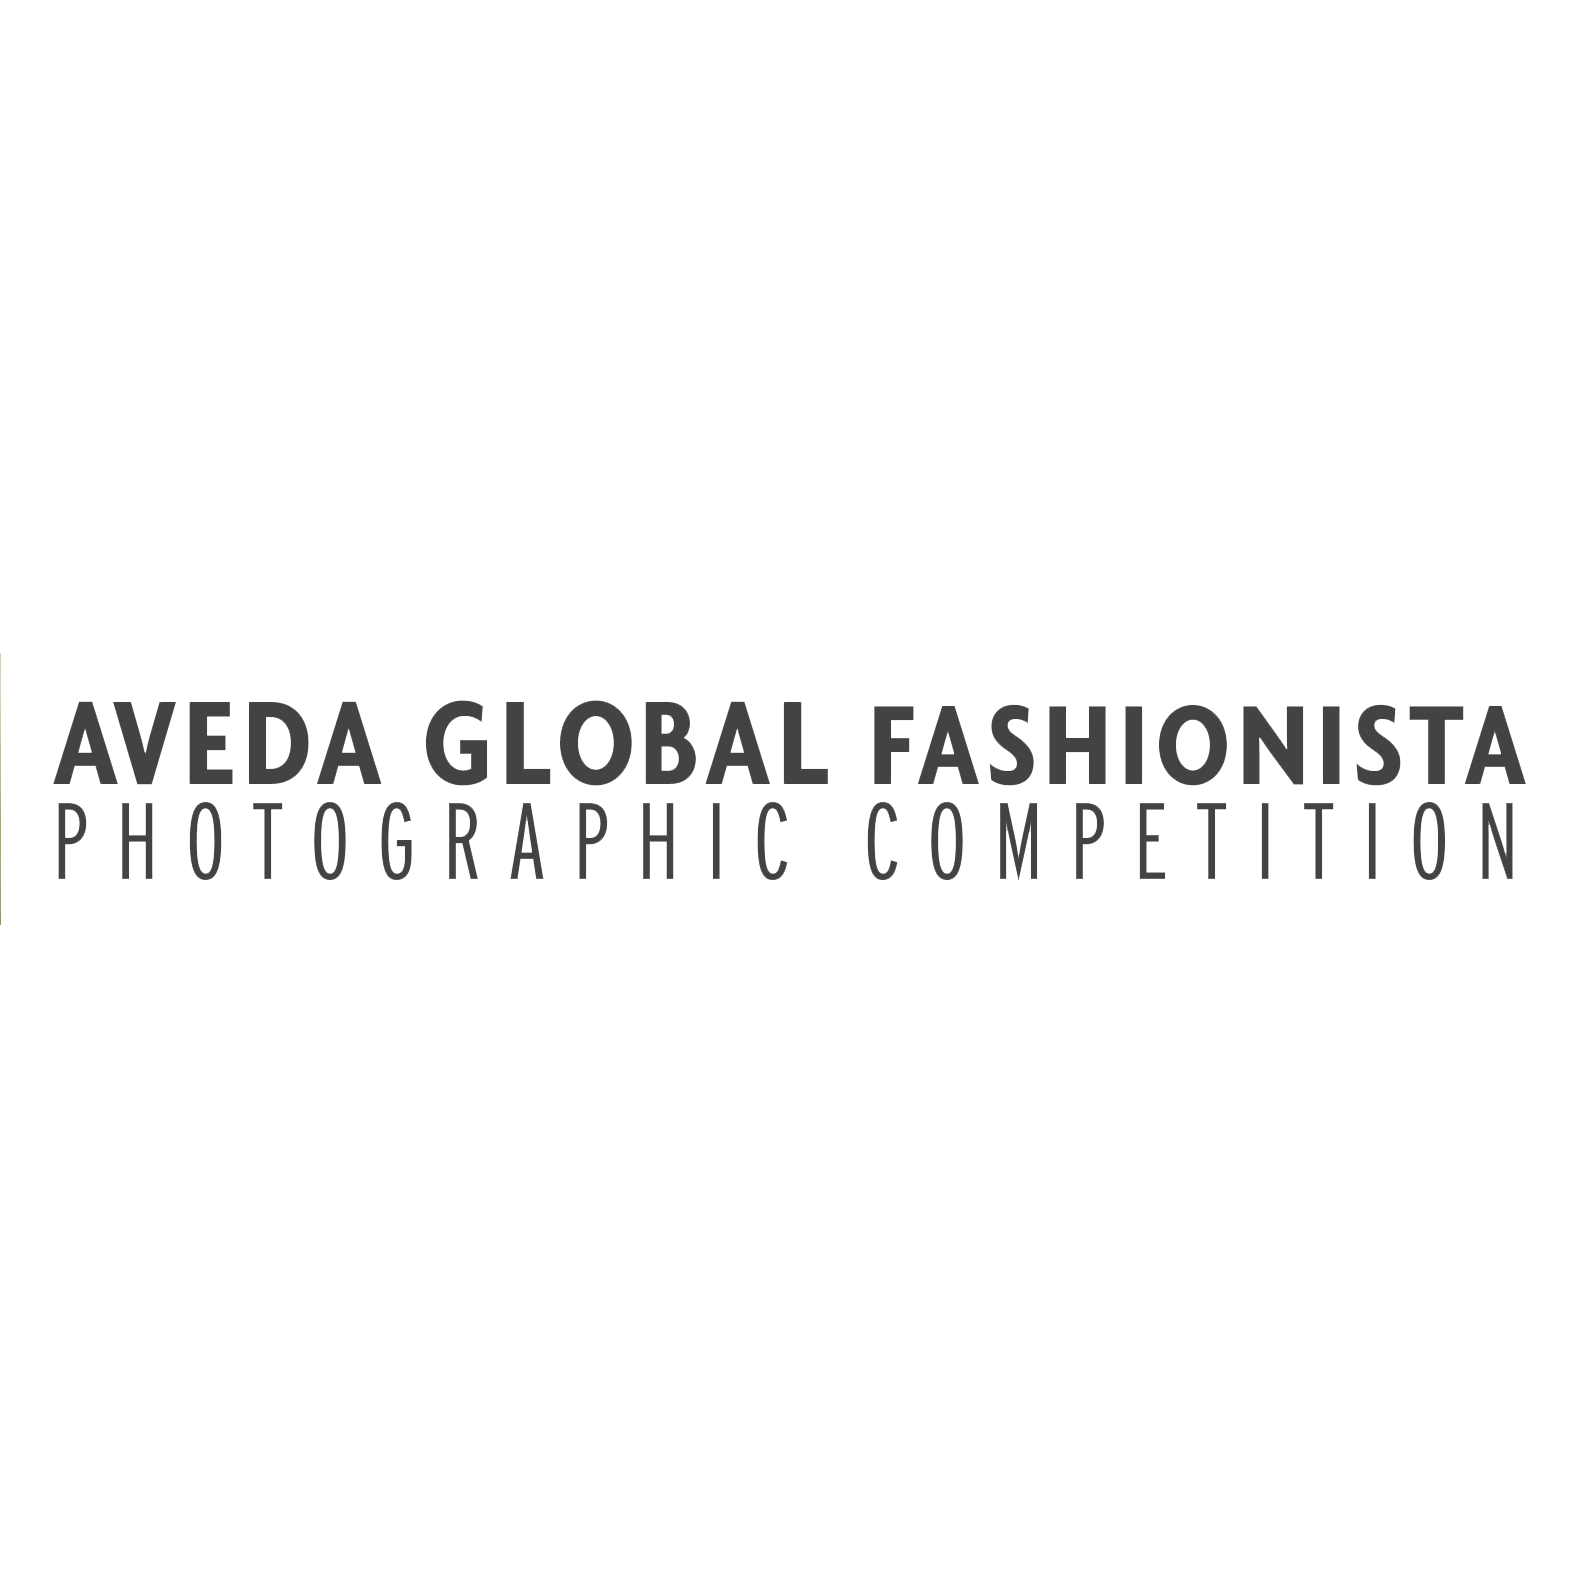 Aveda Global Fashionista Photographic Competition